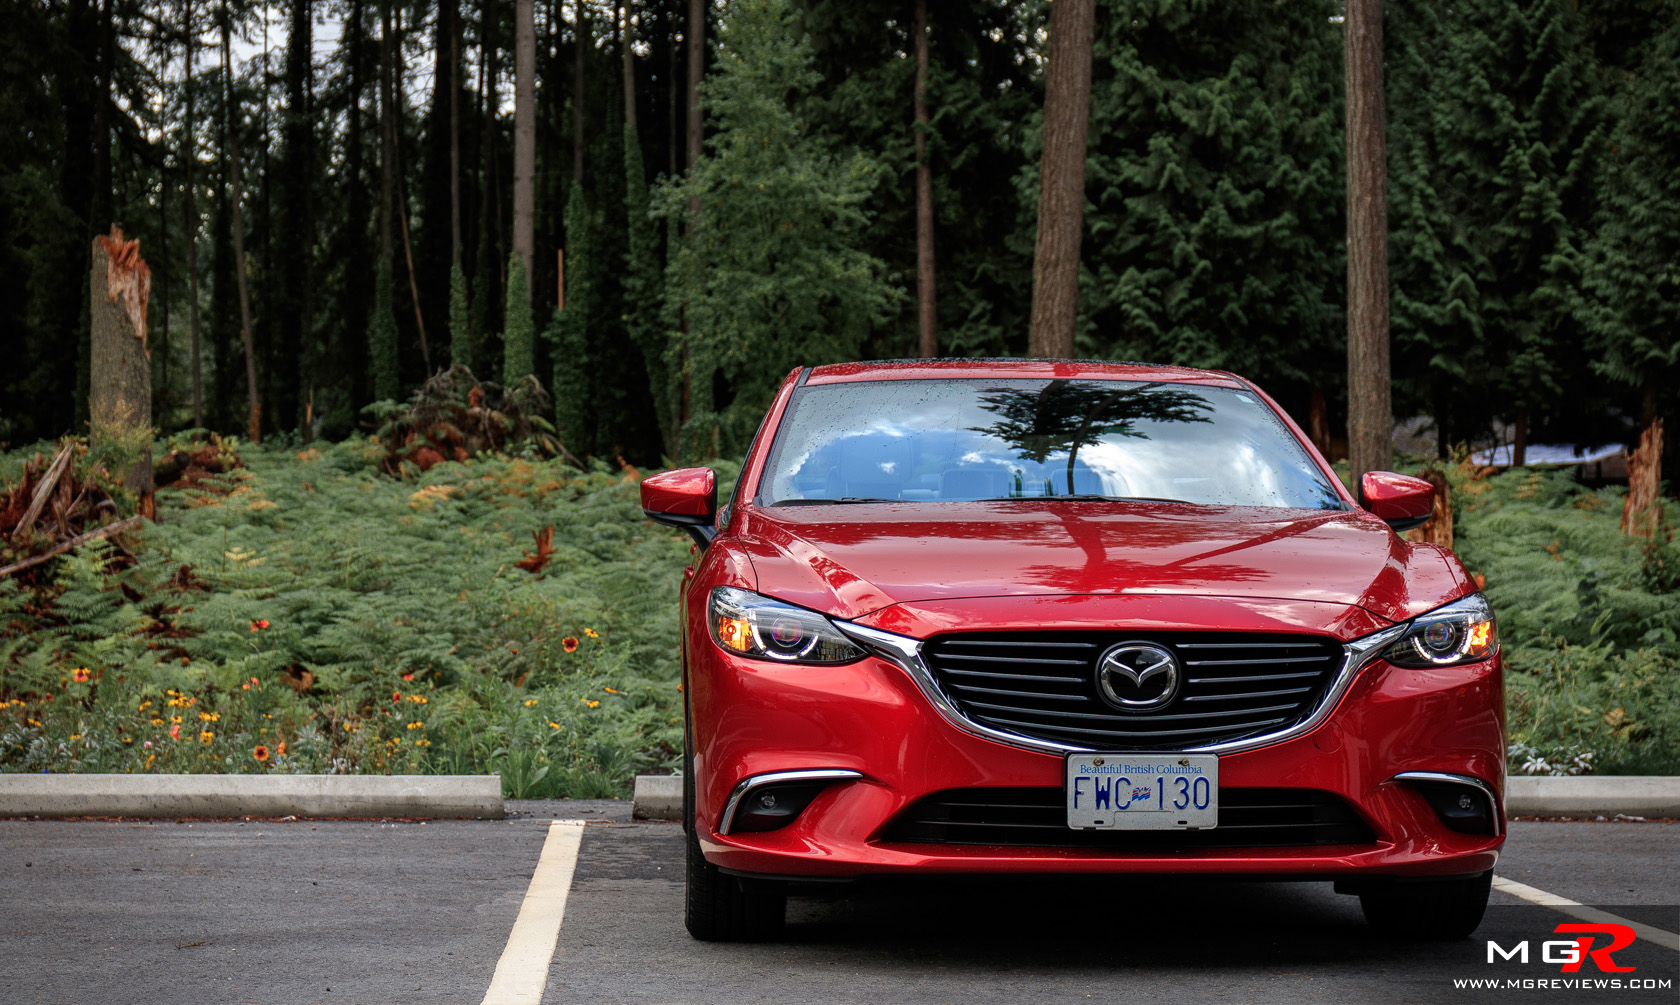 The Mazda 6 Has Not Seen Many Changes Since This Latest Generation Was  Introduced In 2014. It Does Feature, However, A Few Styling Tweaks, A New  G Vectoring ...